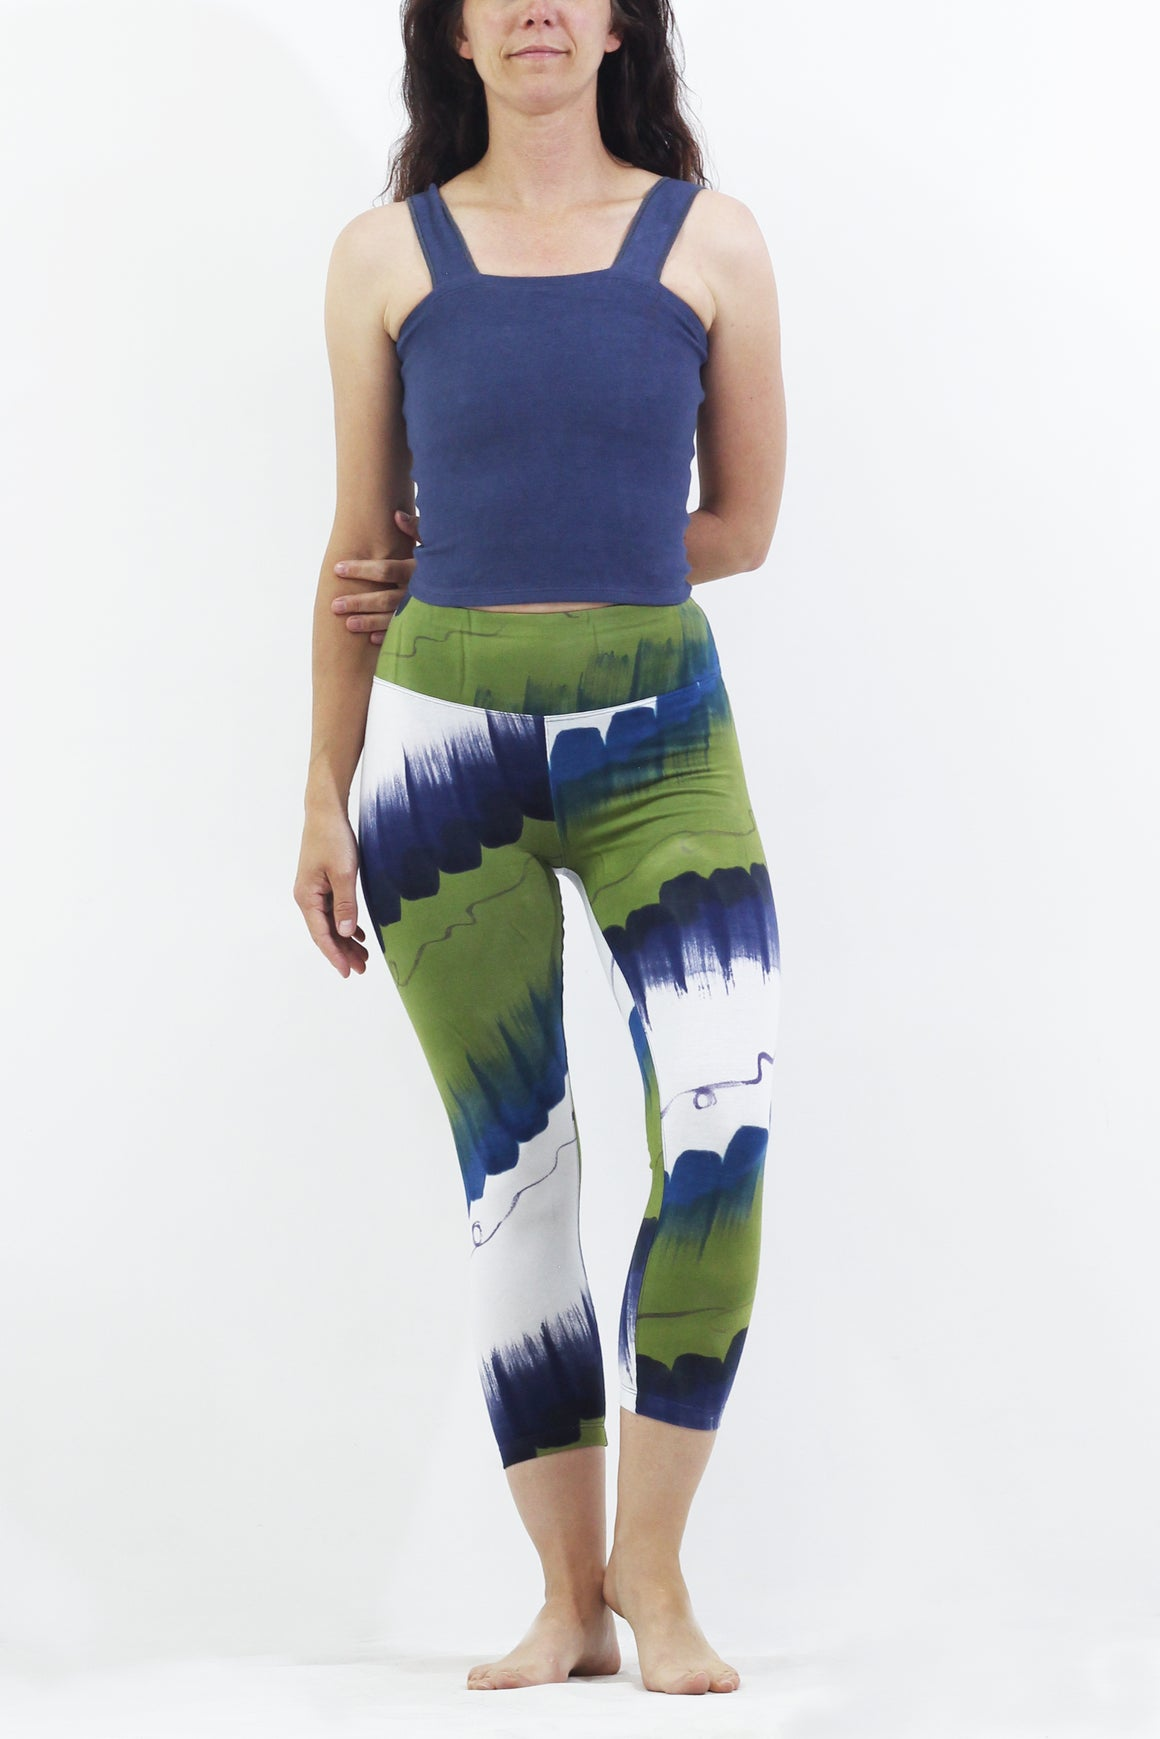 Ribbons of Joy - Leggings or Crops